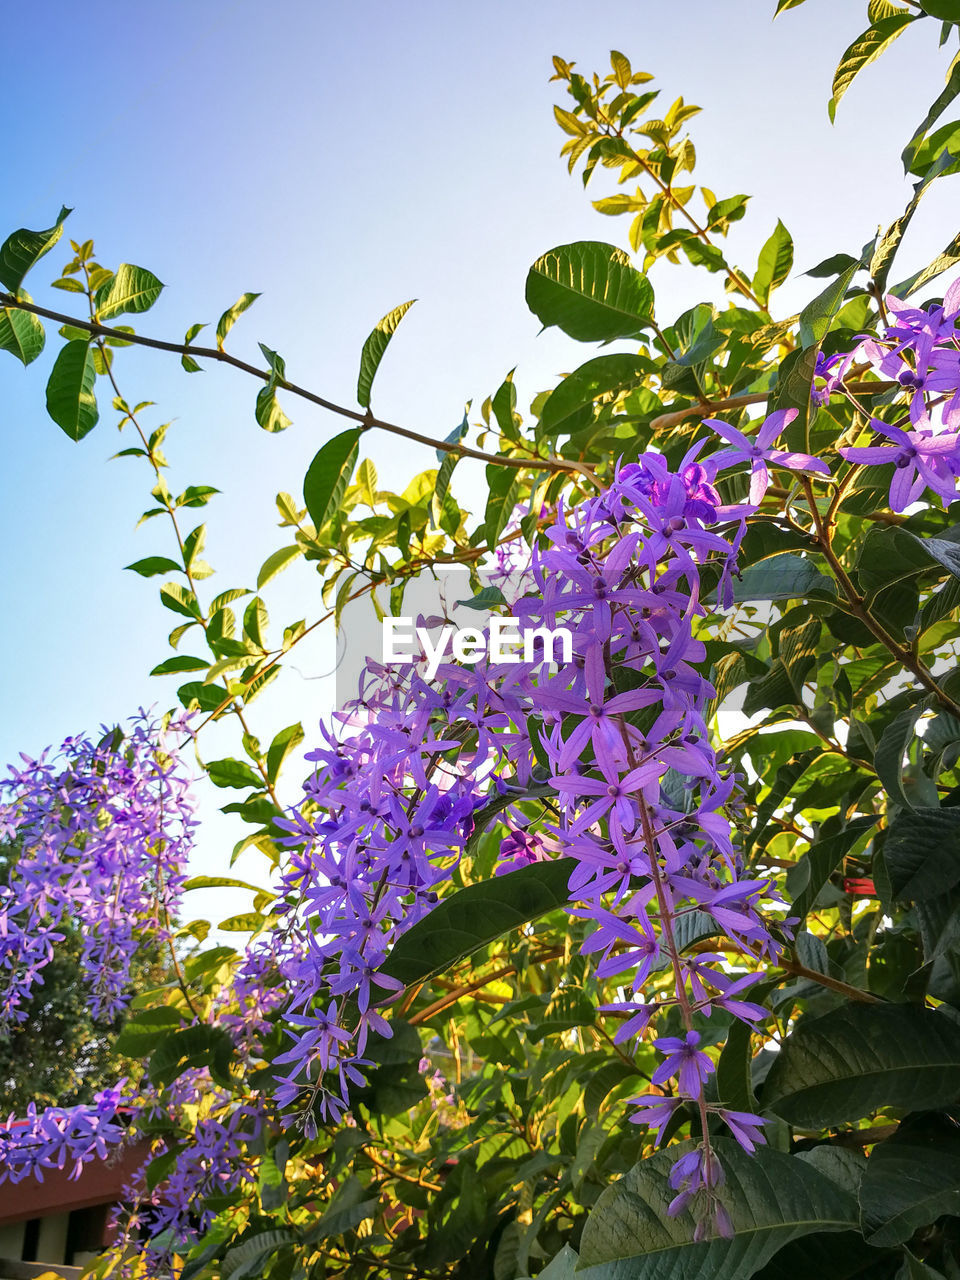 growth, flower, low angle view, freshness, purple, beauty in nature, leaf, green color, fragility, day, nature, no people, outdoors, tree, branch, plant, petal, lilac, blooming, close-up, flower head